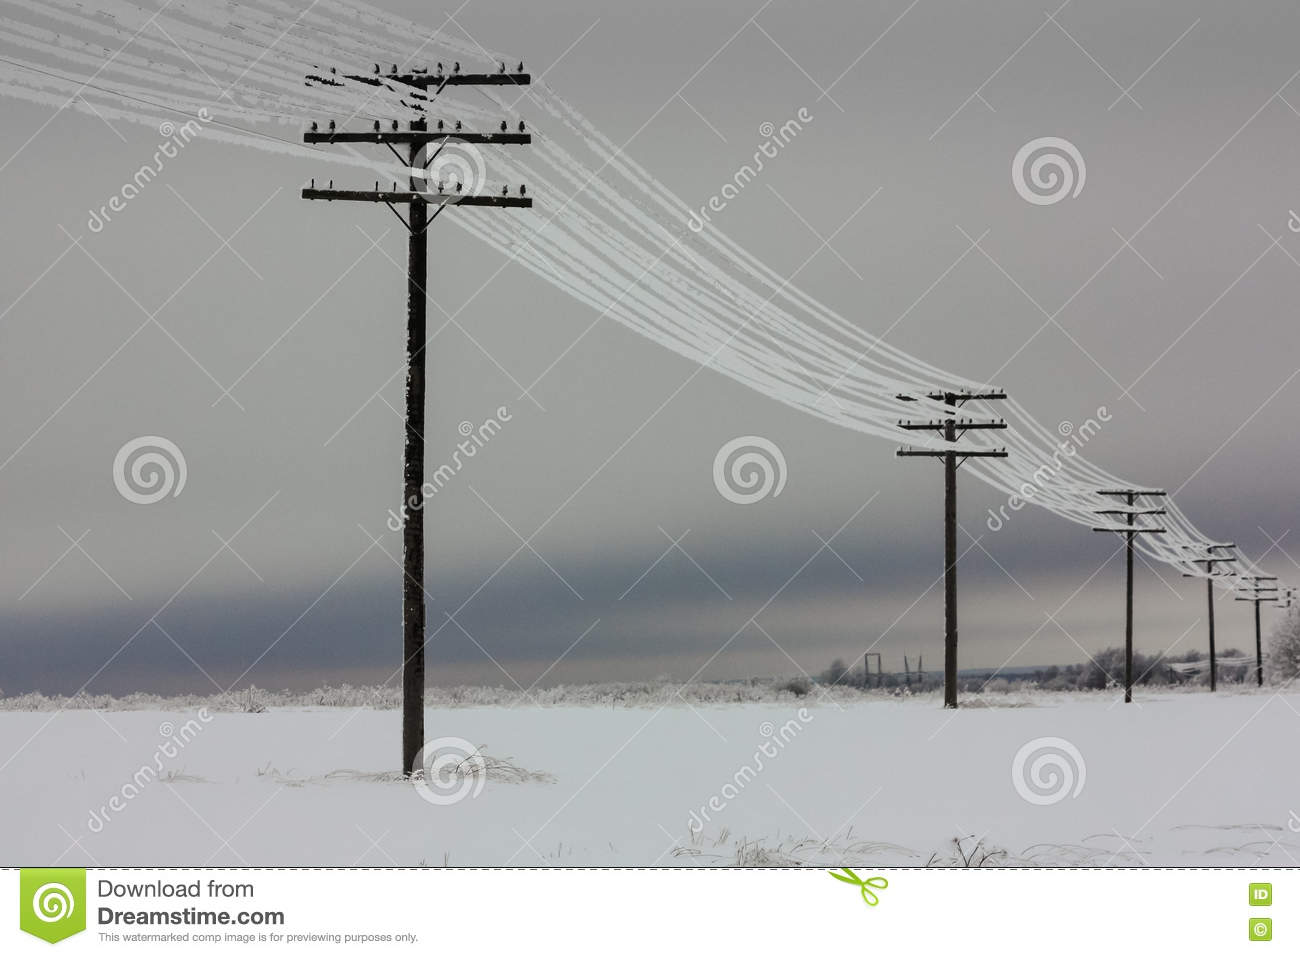 Electric Poles Power Lines : Electrical power lines with hoarfrost on the wooden